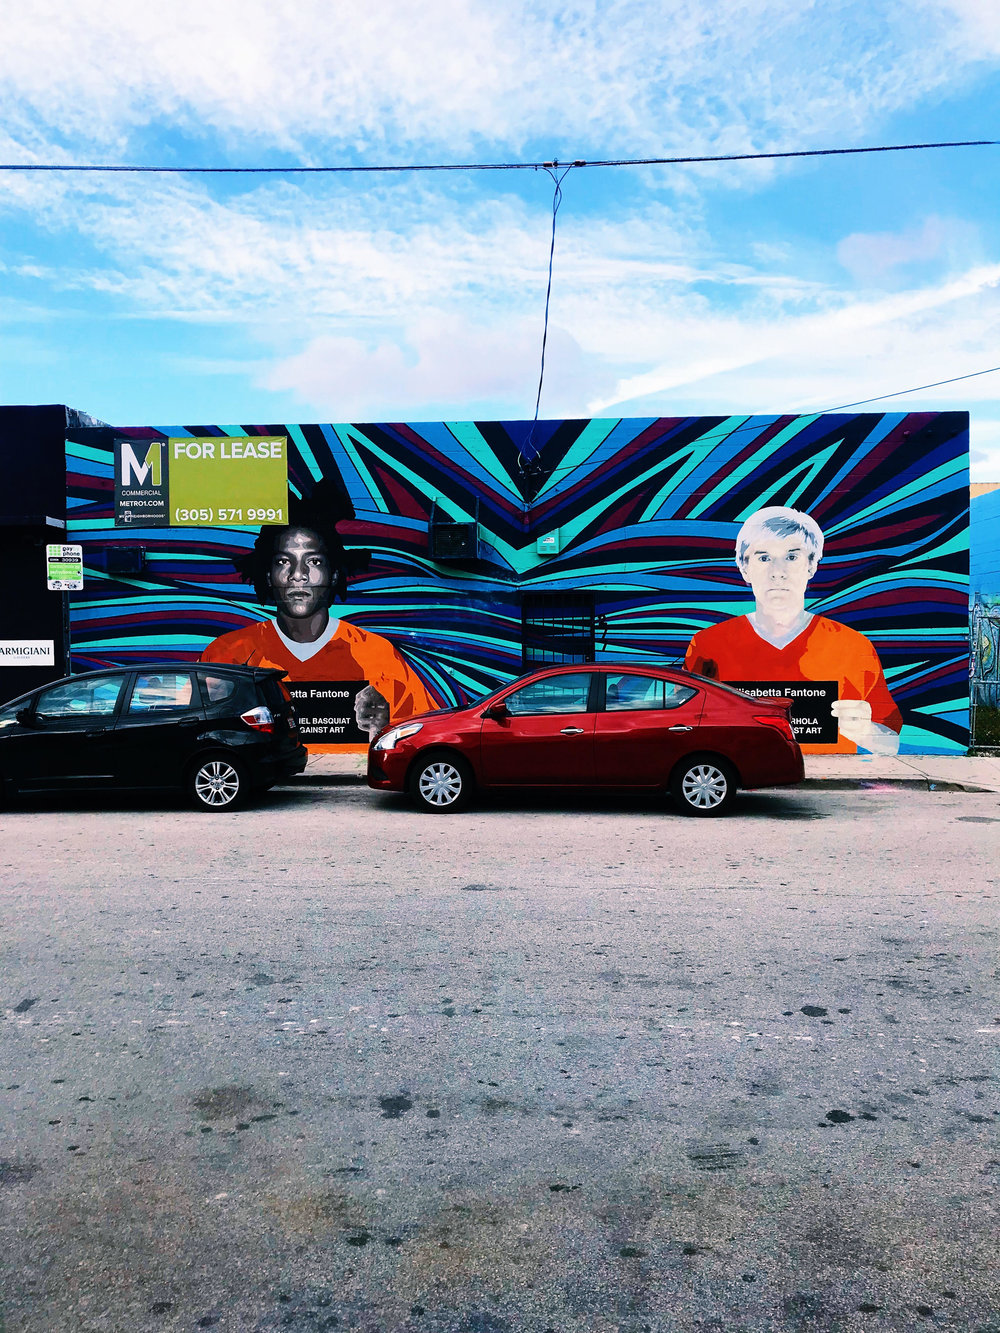 Artwork in Wynwood Arts District